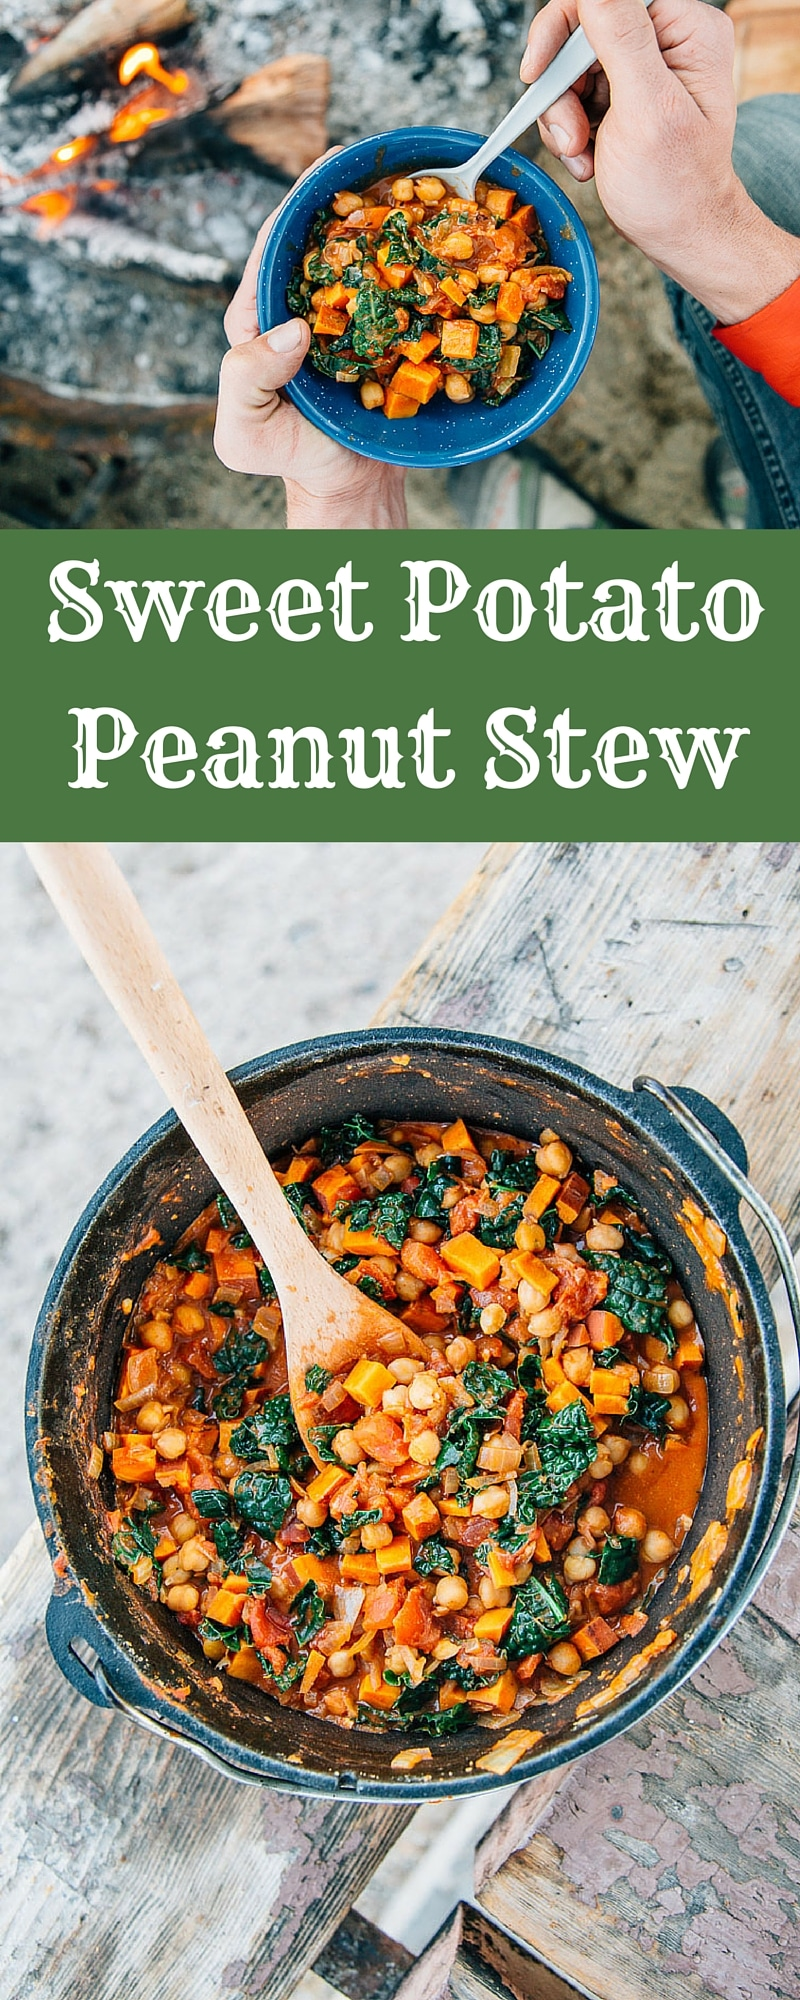 ... Sweet Potato and Peanut Stew is a perfect meal to make over the